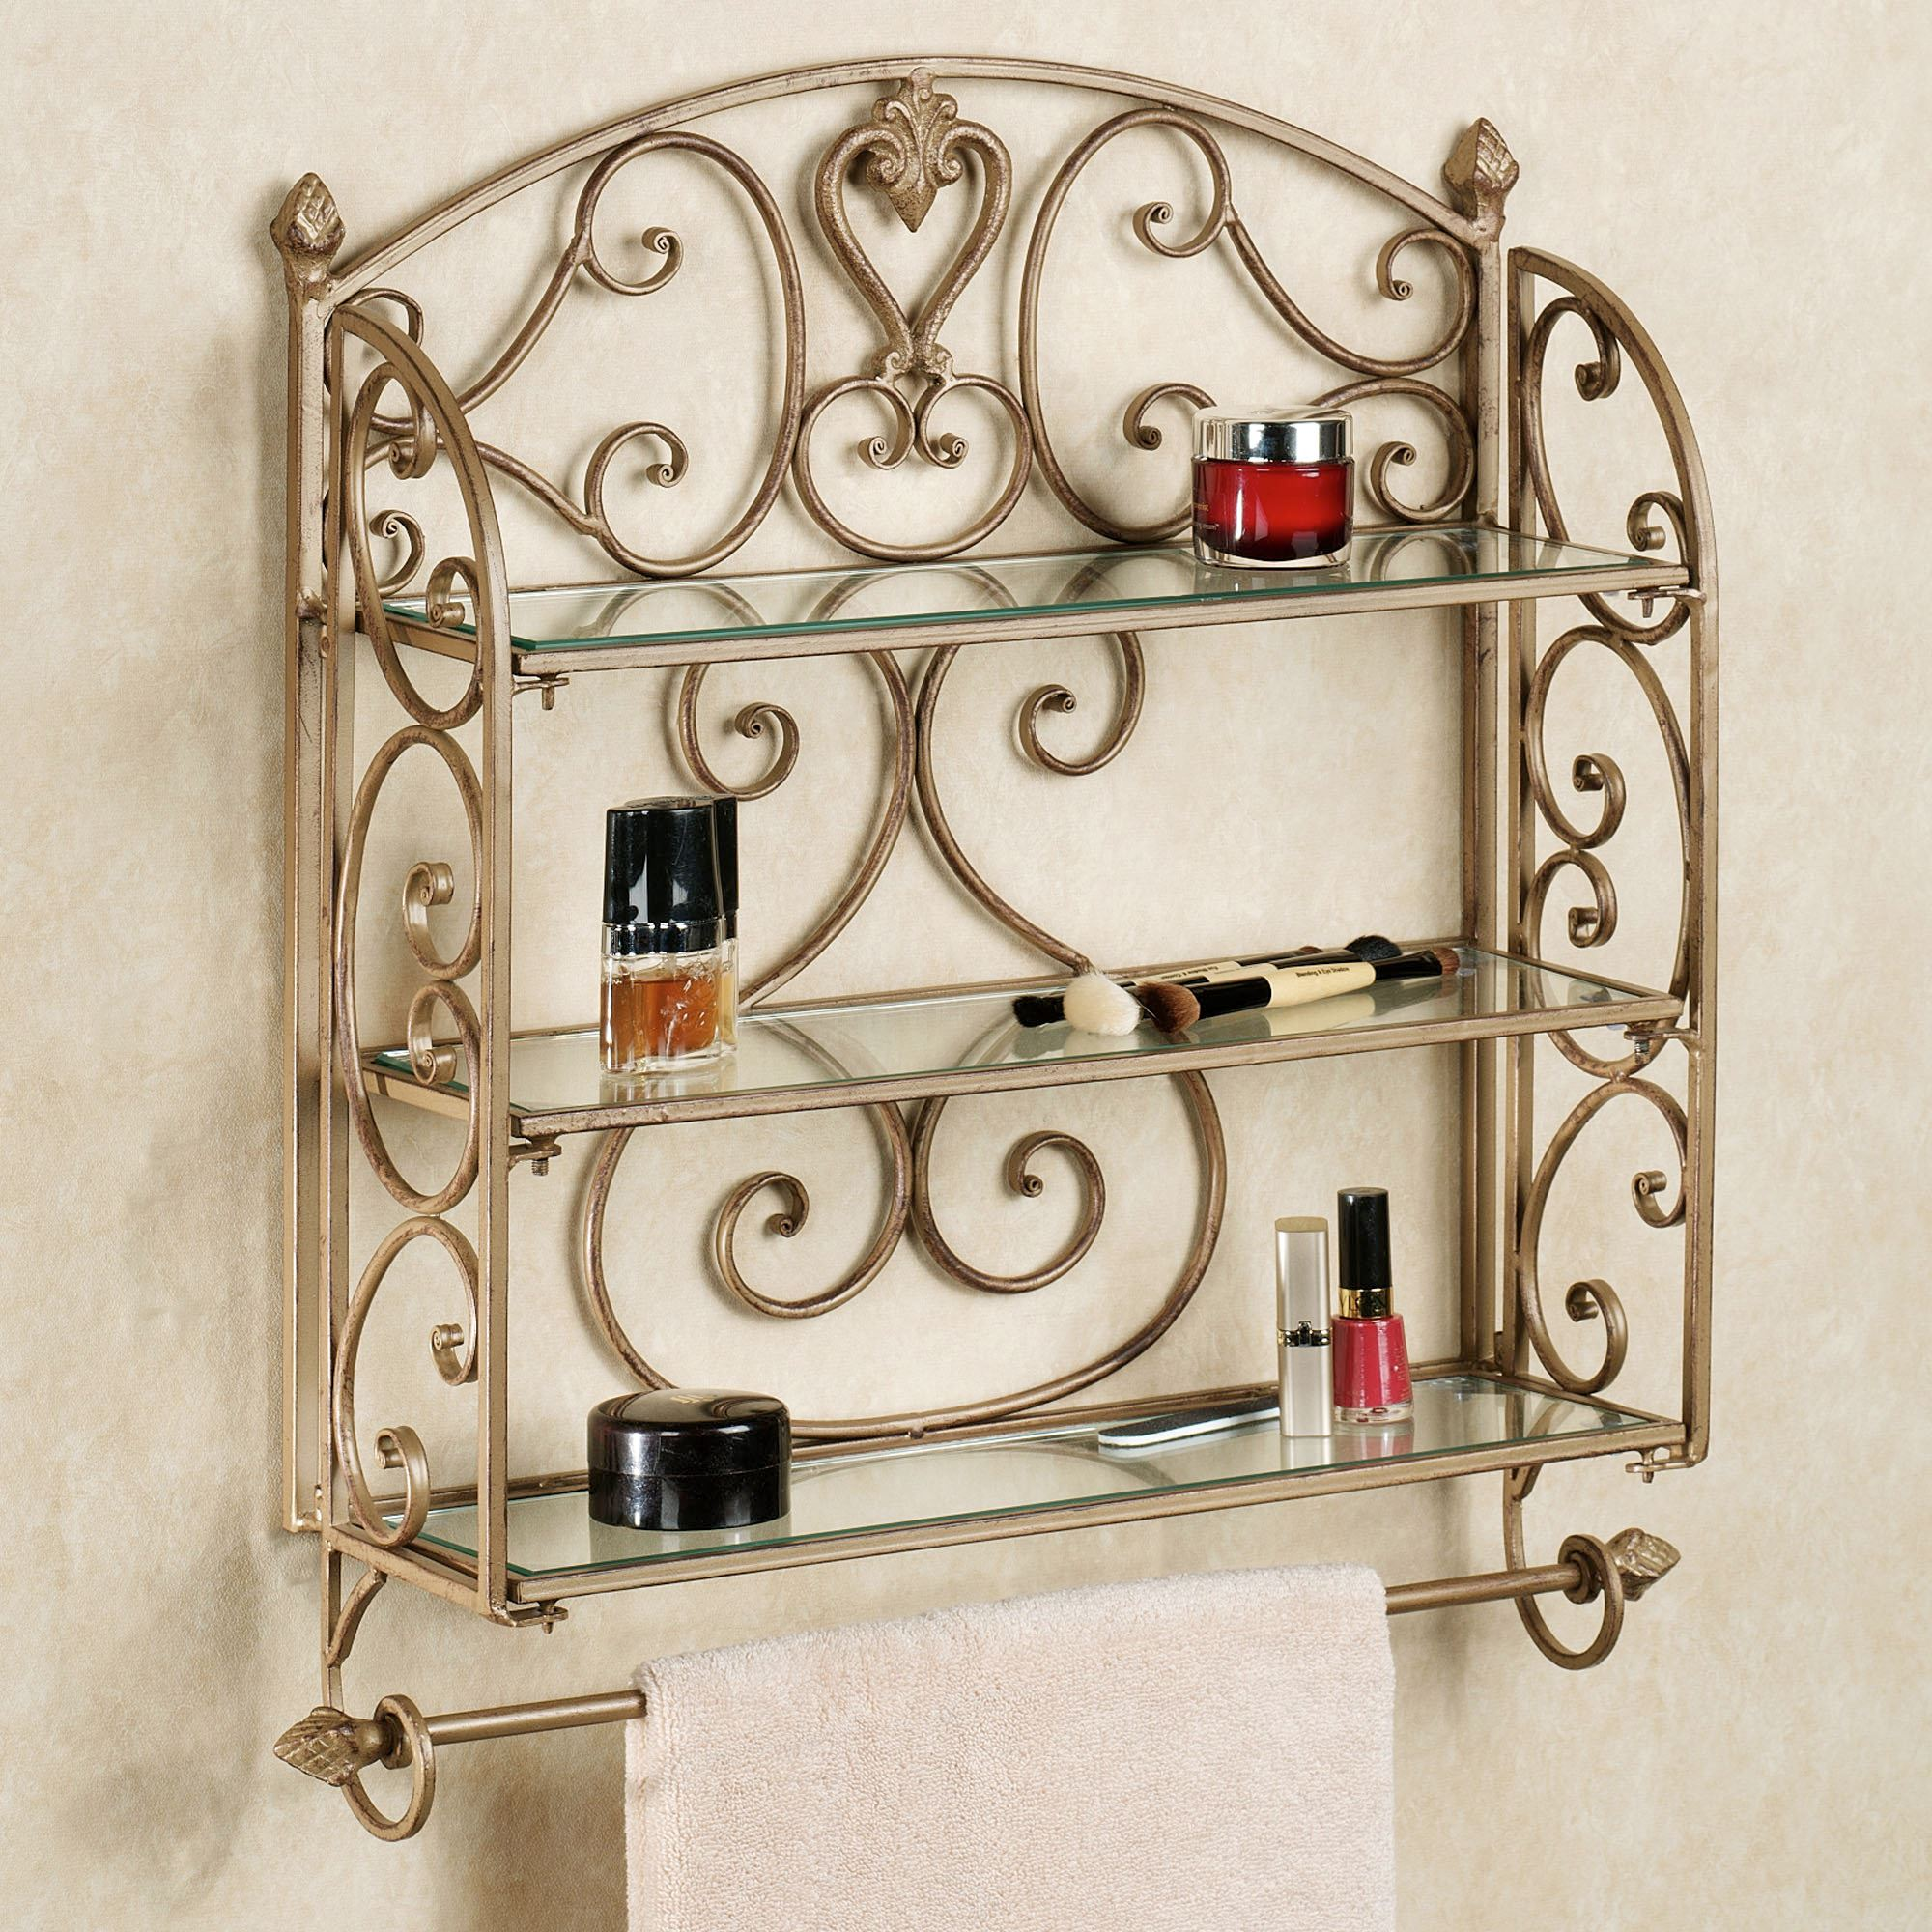 Aldabella Satin Gold Wall Shelf Towel Bar - Wrought iron bathroom wall shelves